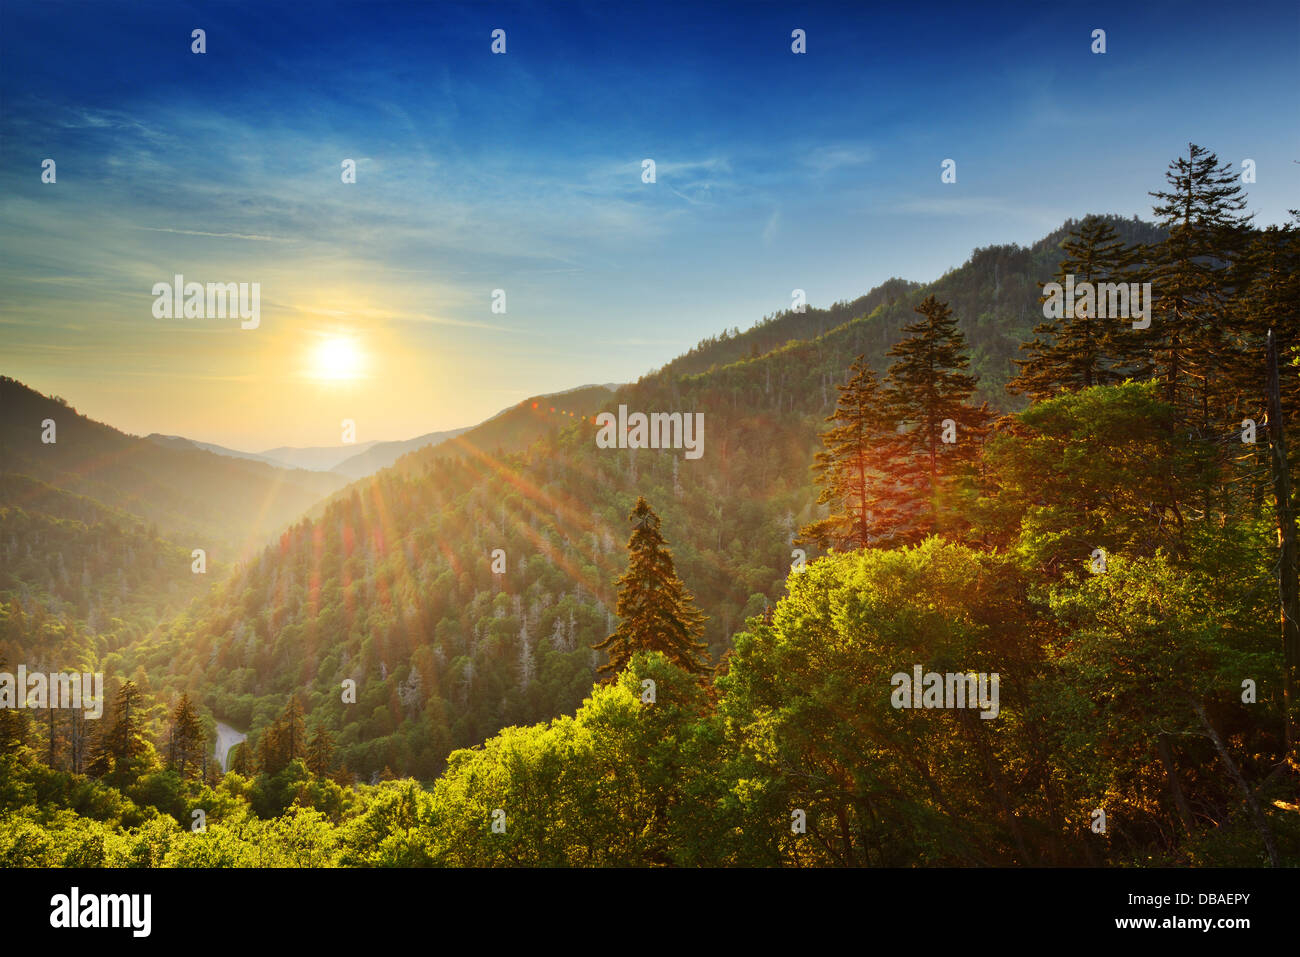 Sunset at the Newfound Gap in the Great Smoky Mountains. - Stock Image